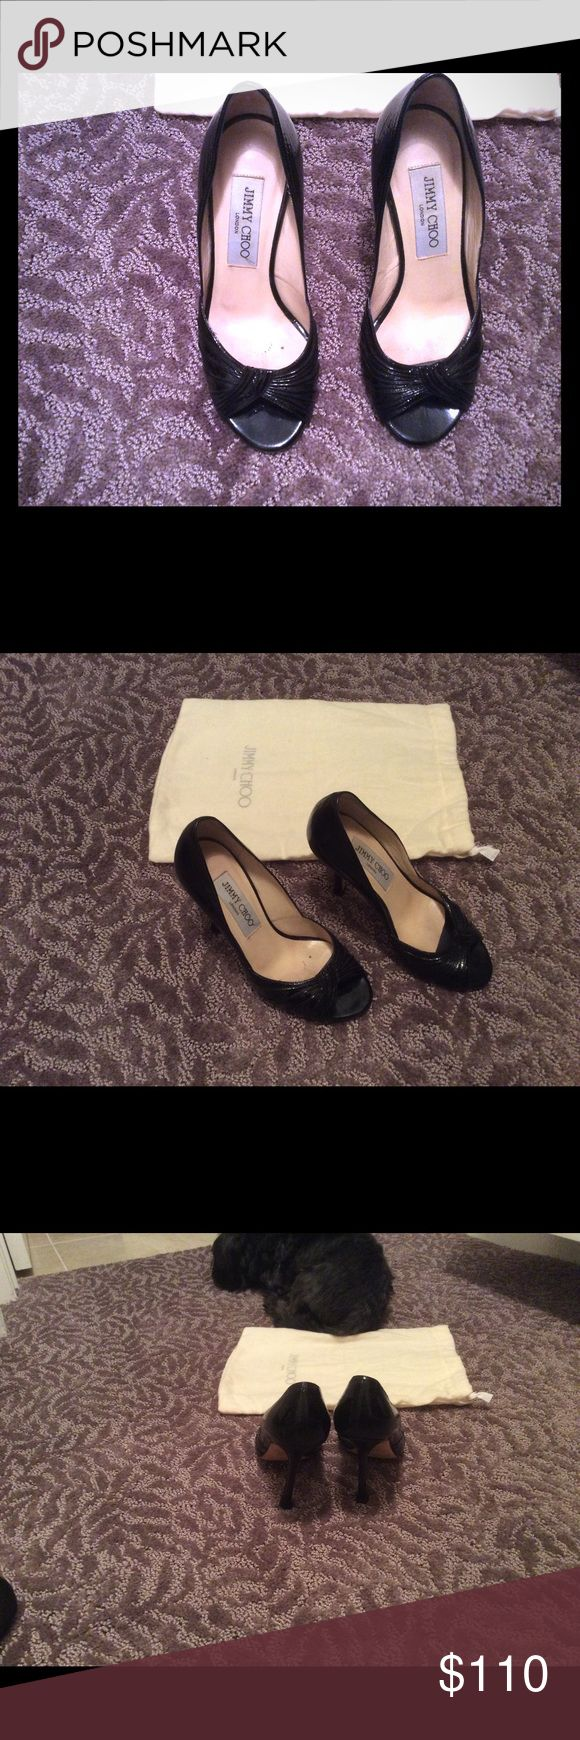 👠Jimmy Choo Open Toe Heal size 4 Jimmy Choo Open Toe Heel size 4 worn on bottom heels in good condition w duster no box Jimmy Choo Shoes Heels